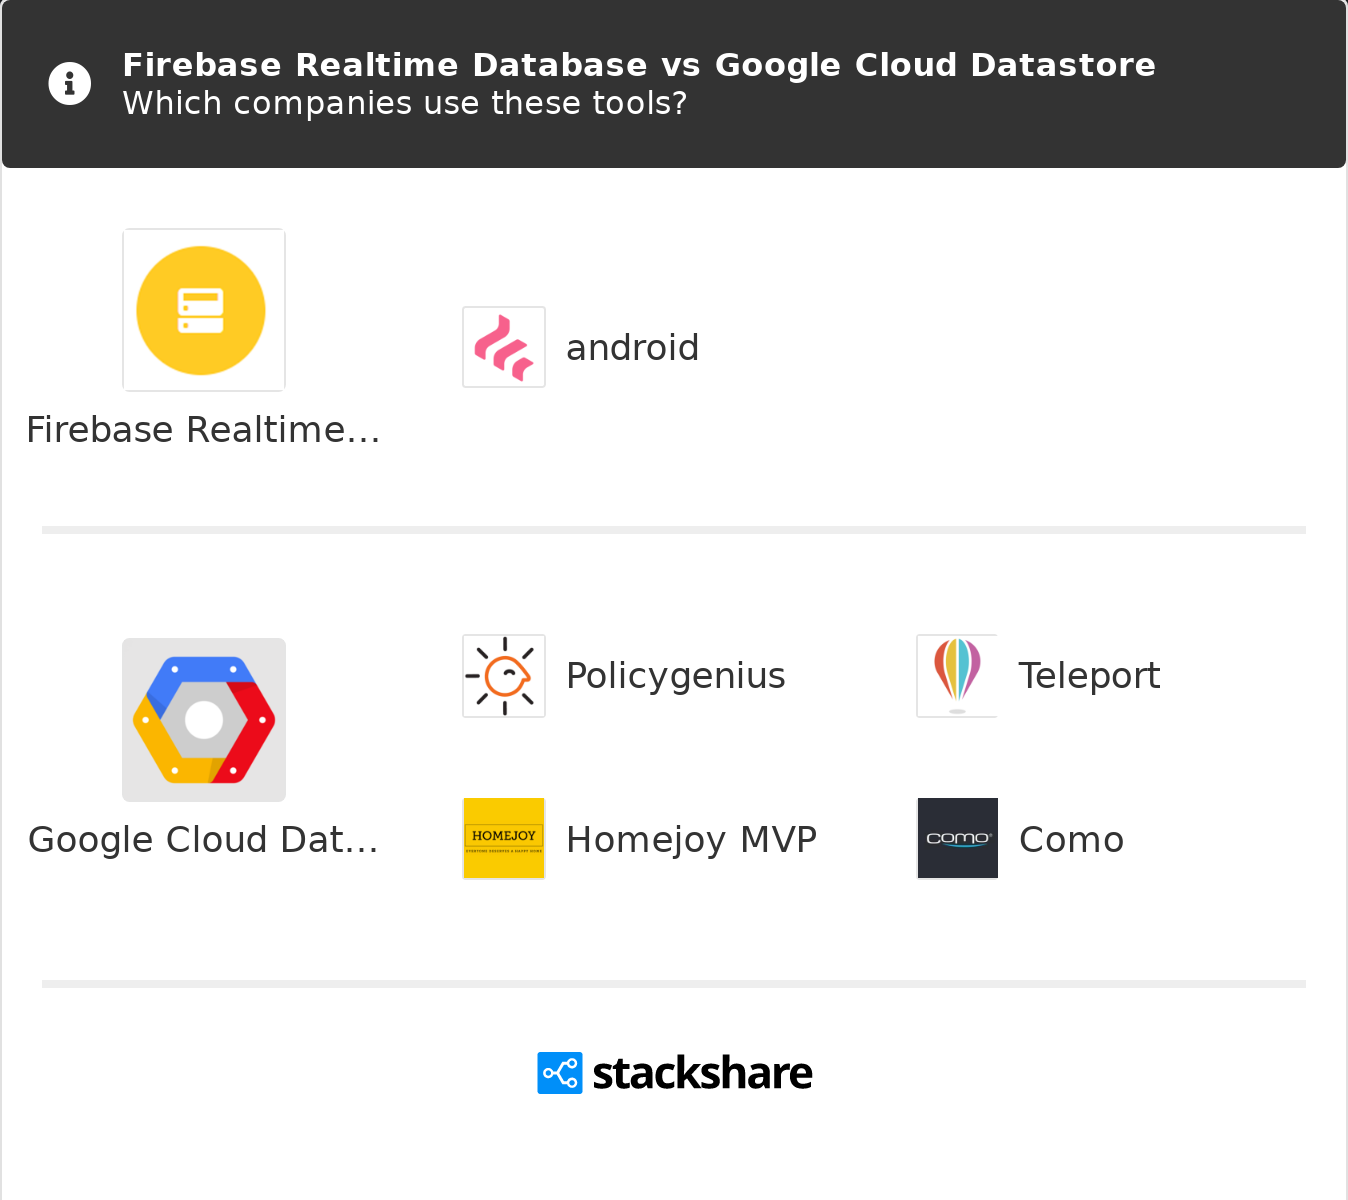 Firebase Realtime Database Vs Google Cloud Datastore What Are The Differences